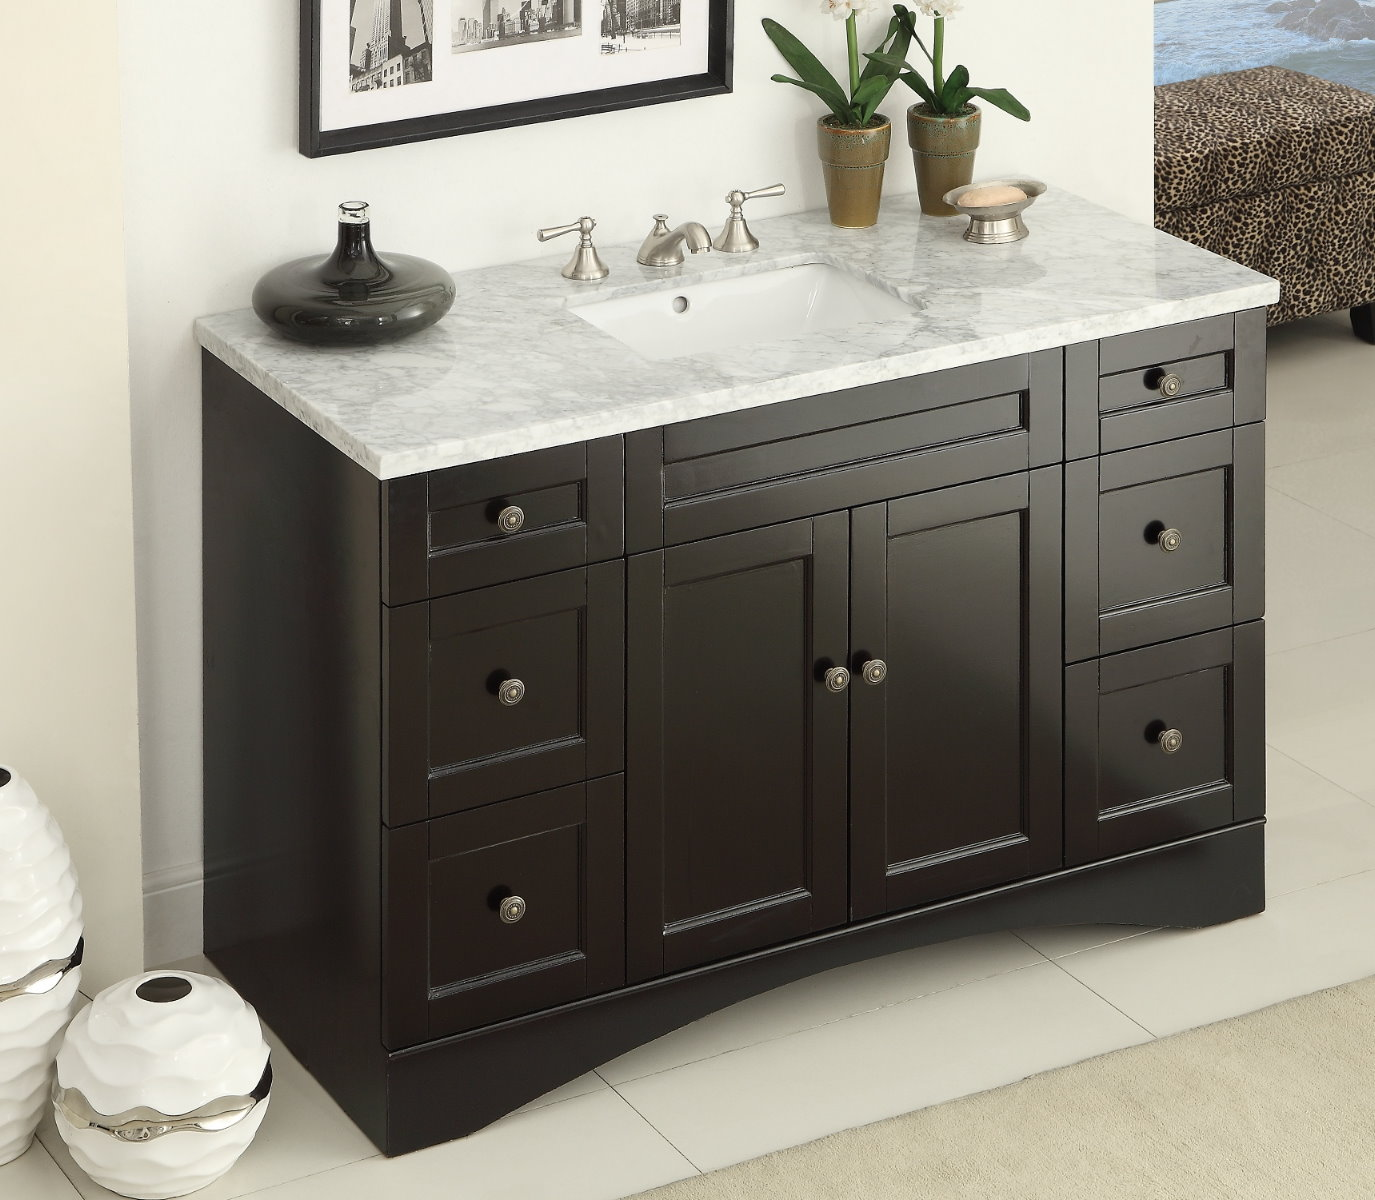 24 lovely images of 47 Inch Bathroom Vanity